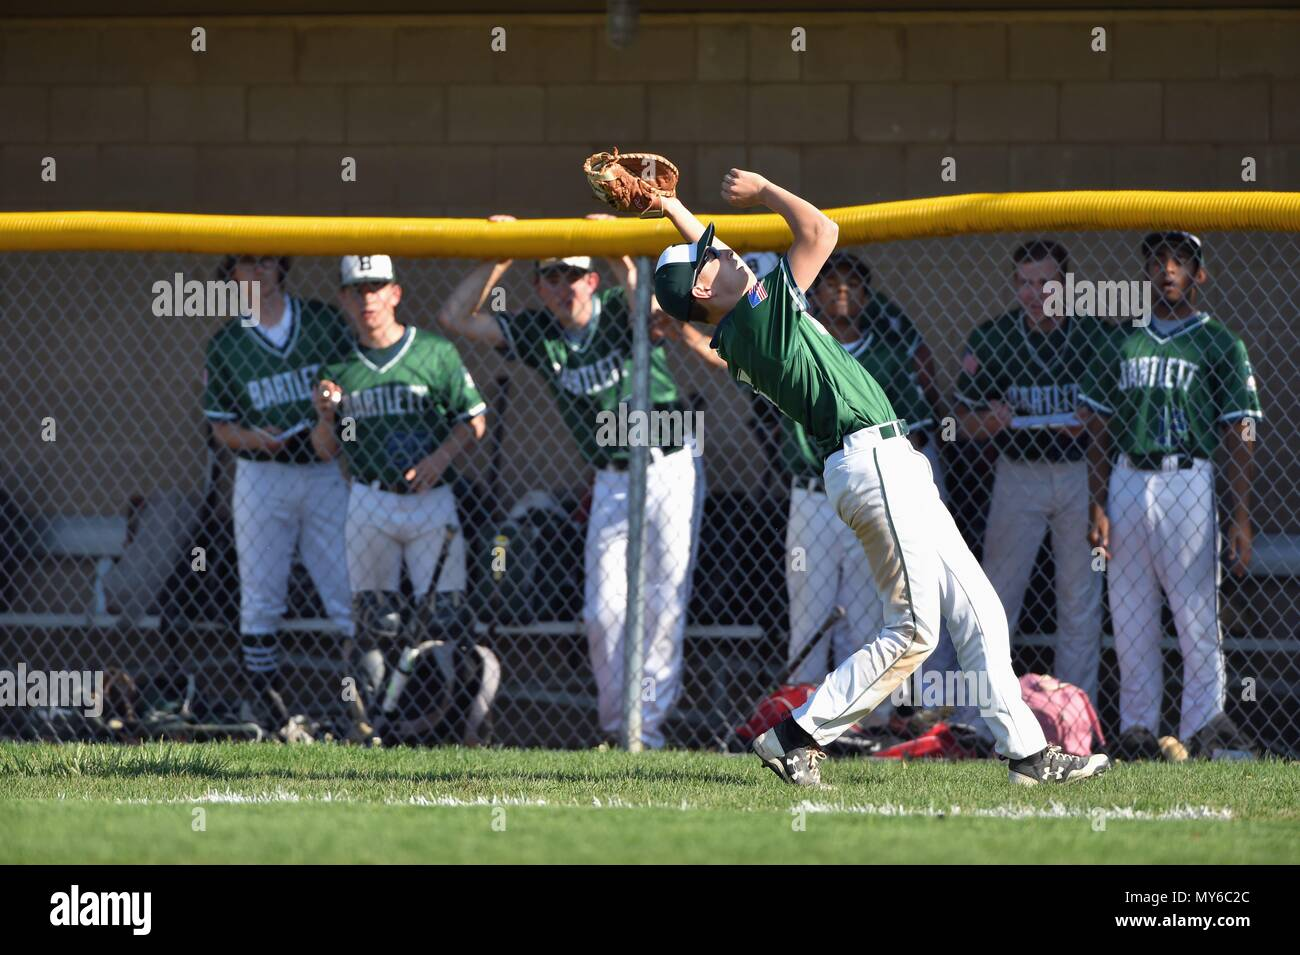 First baseman making a running catch of a foul pop fly. USA. - Stock Image